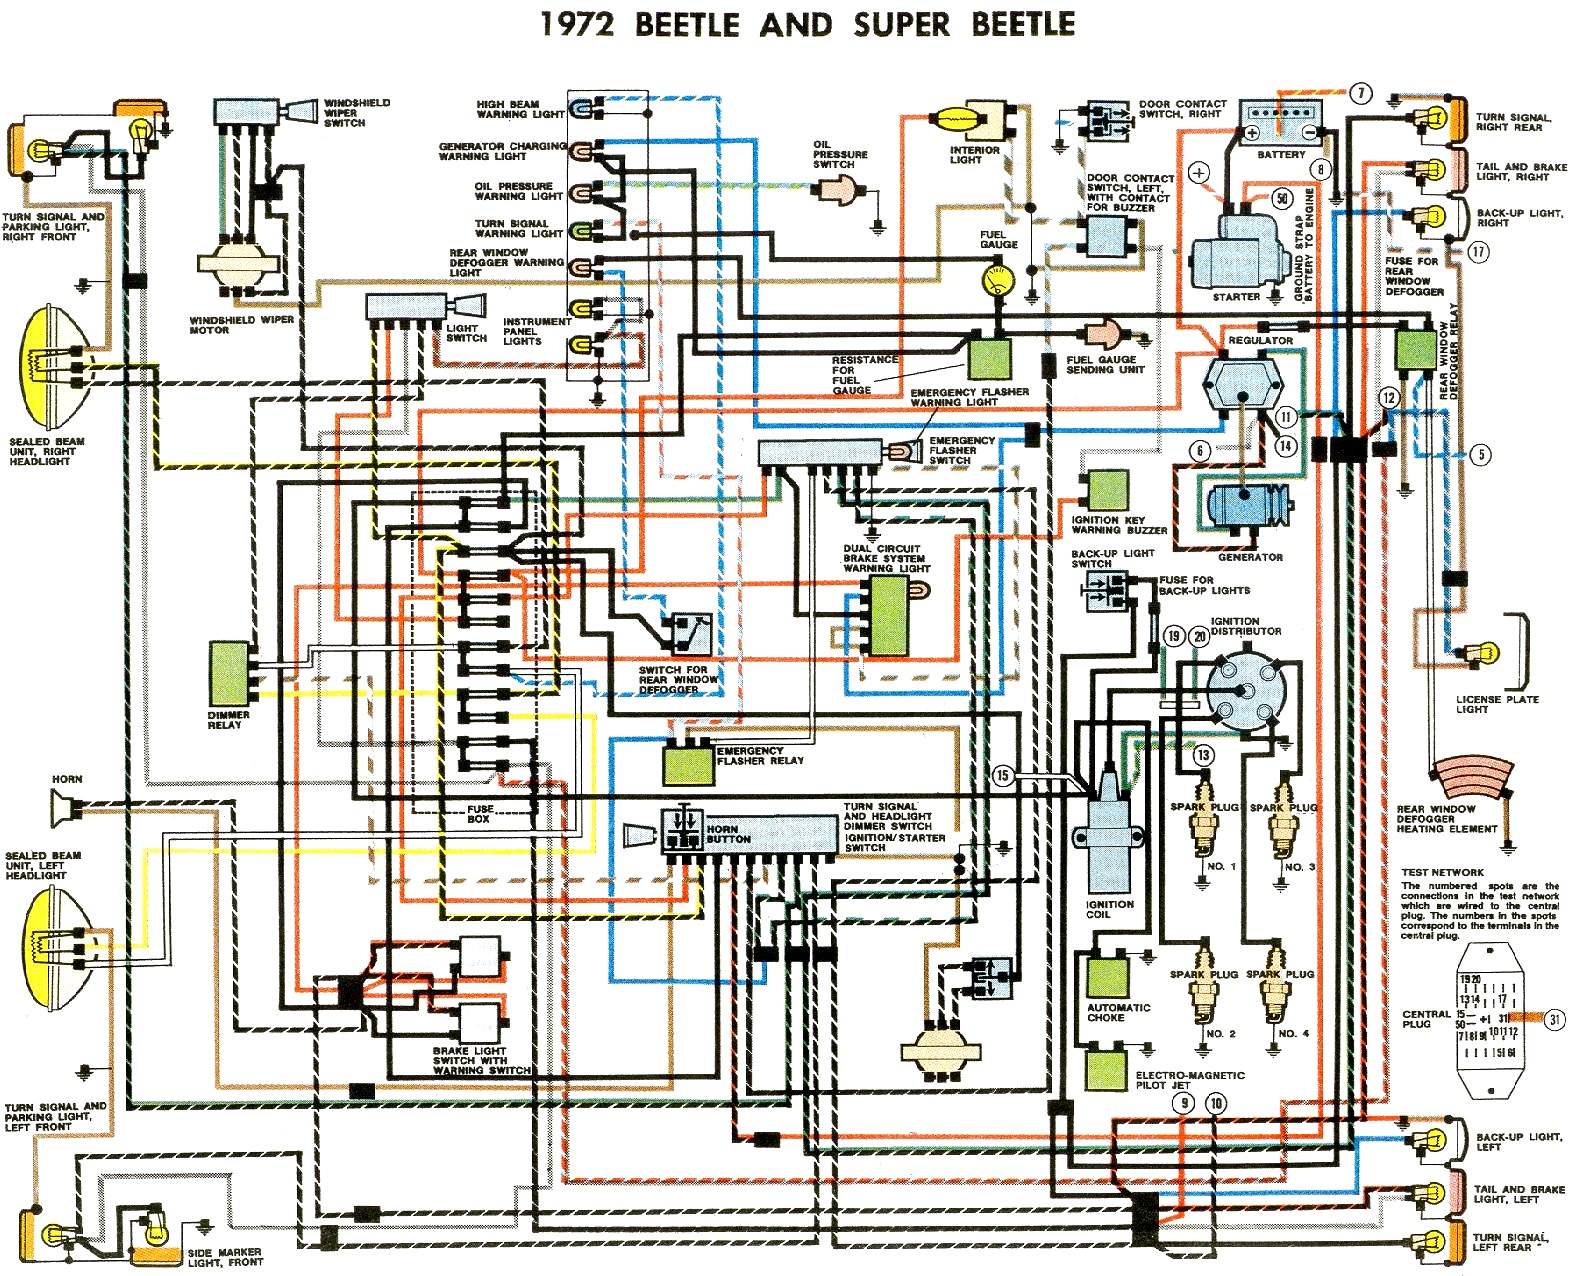 bug_72 2003 vw beetle wiring diagram 2003 nissan maxima wiring diagram wiring diagram for 2006 volkswagen jetta at mifinder.co